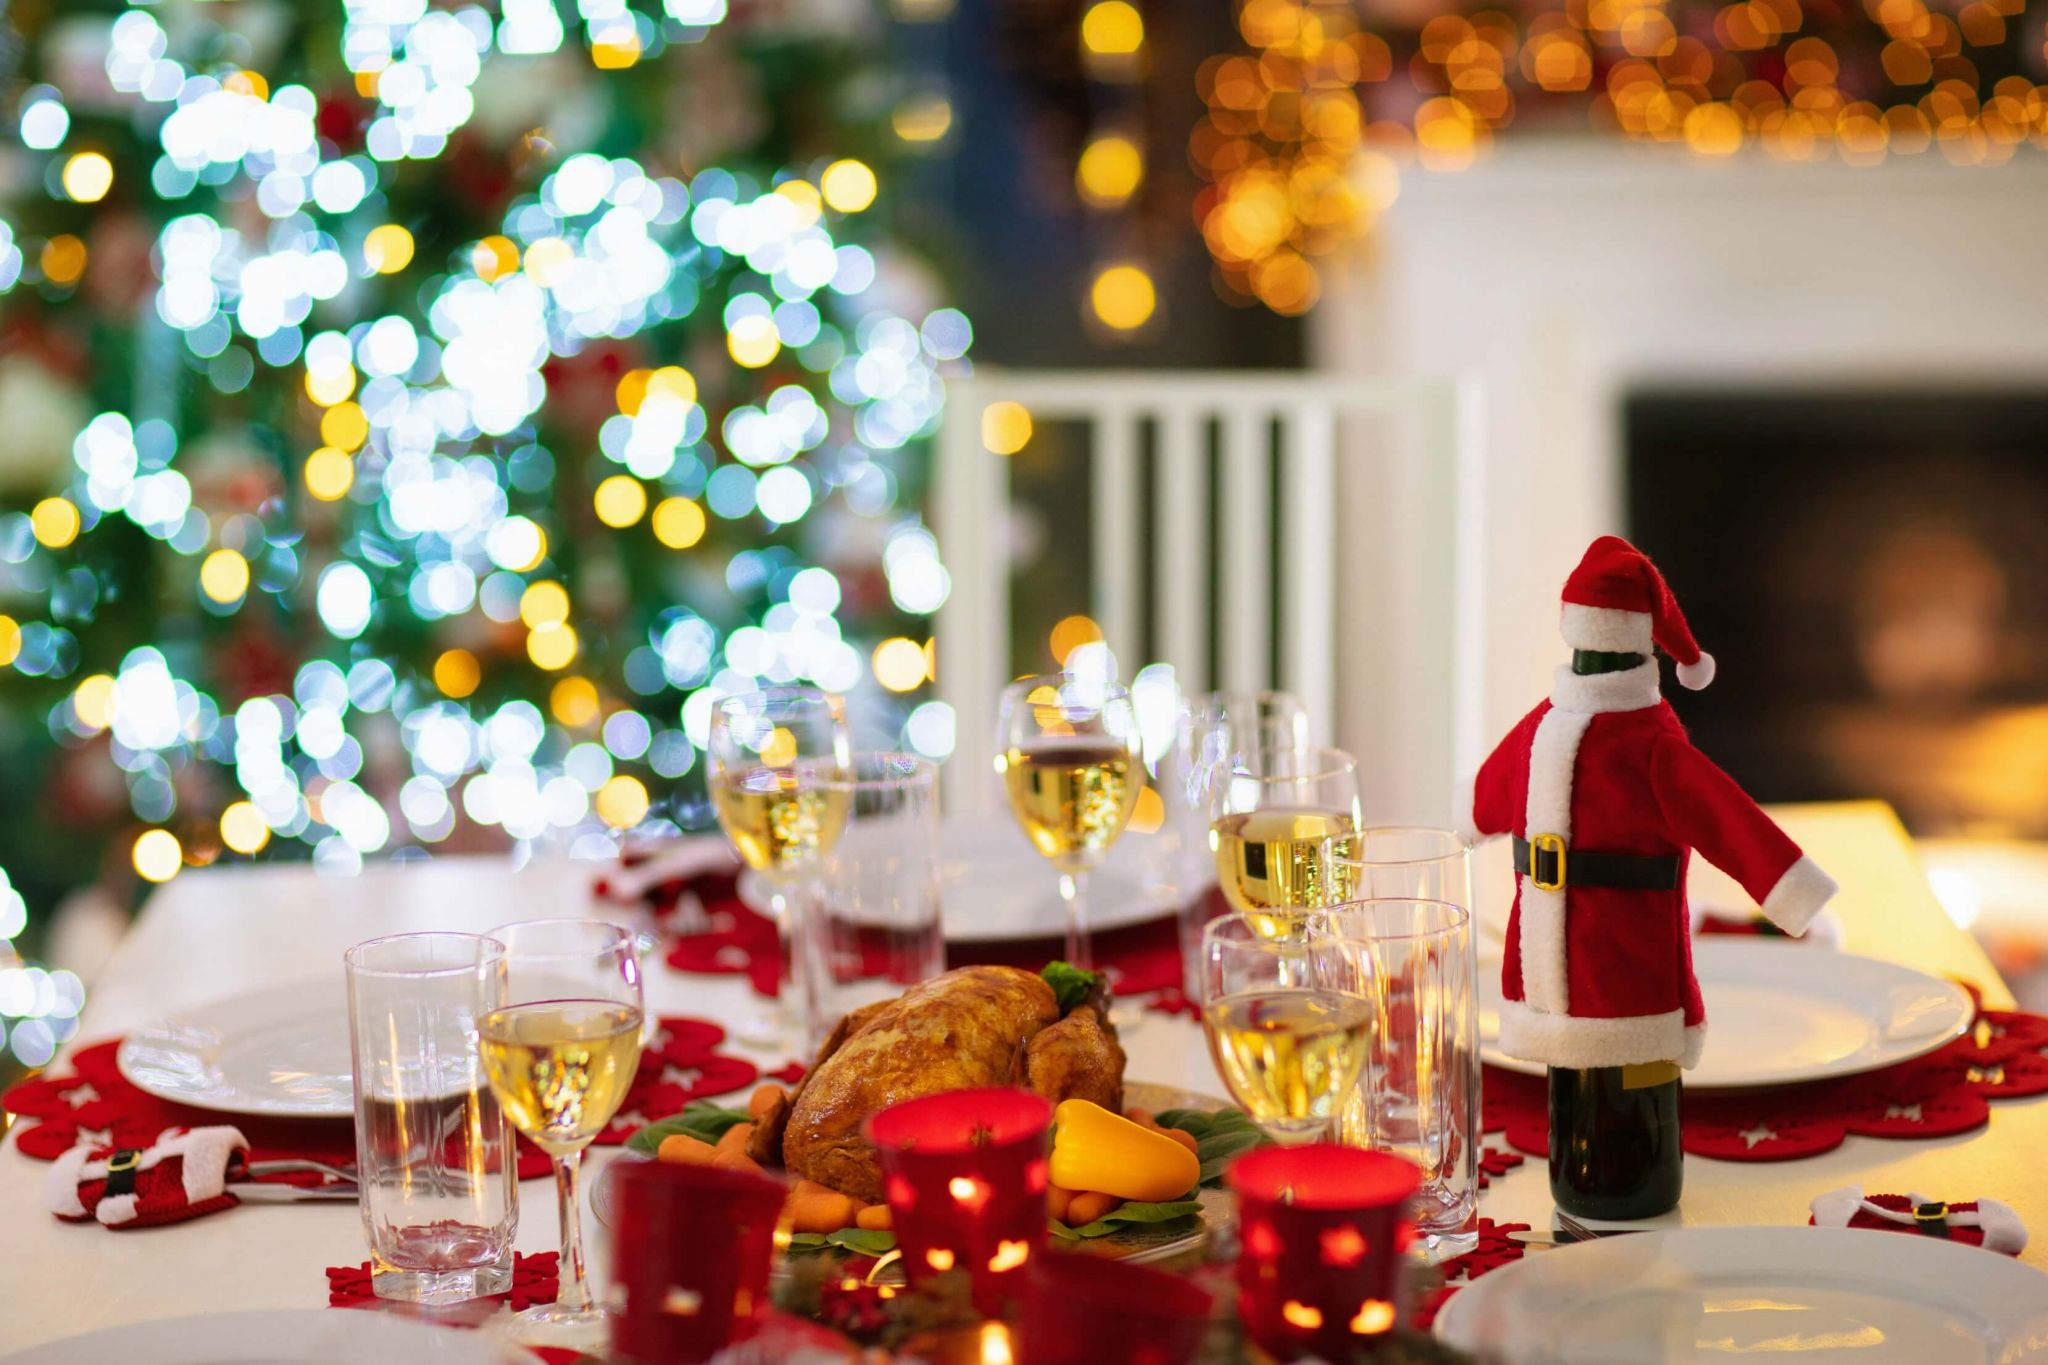 Christmas arguments - Christmas table ready for lunch